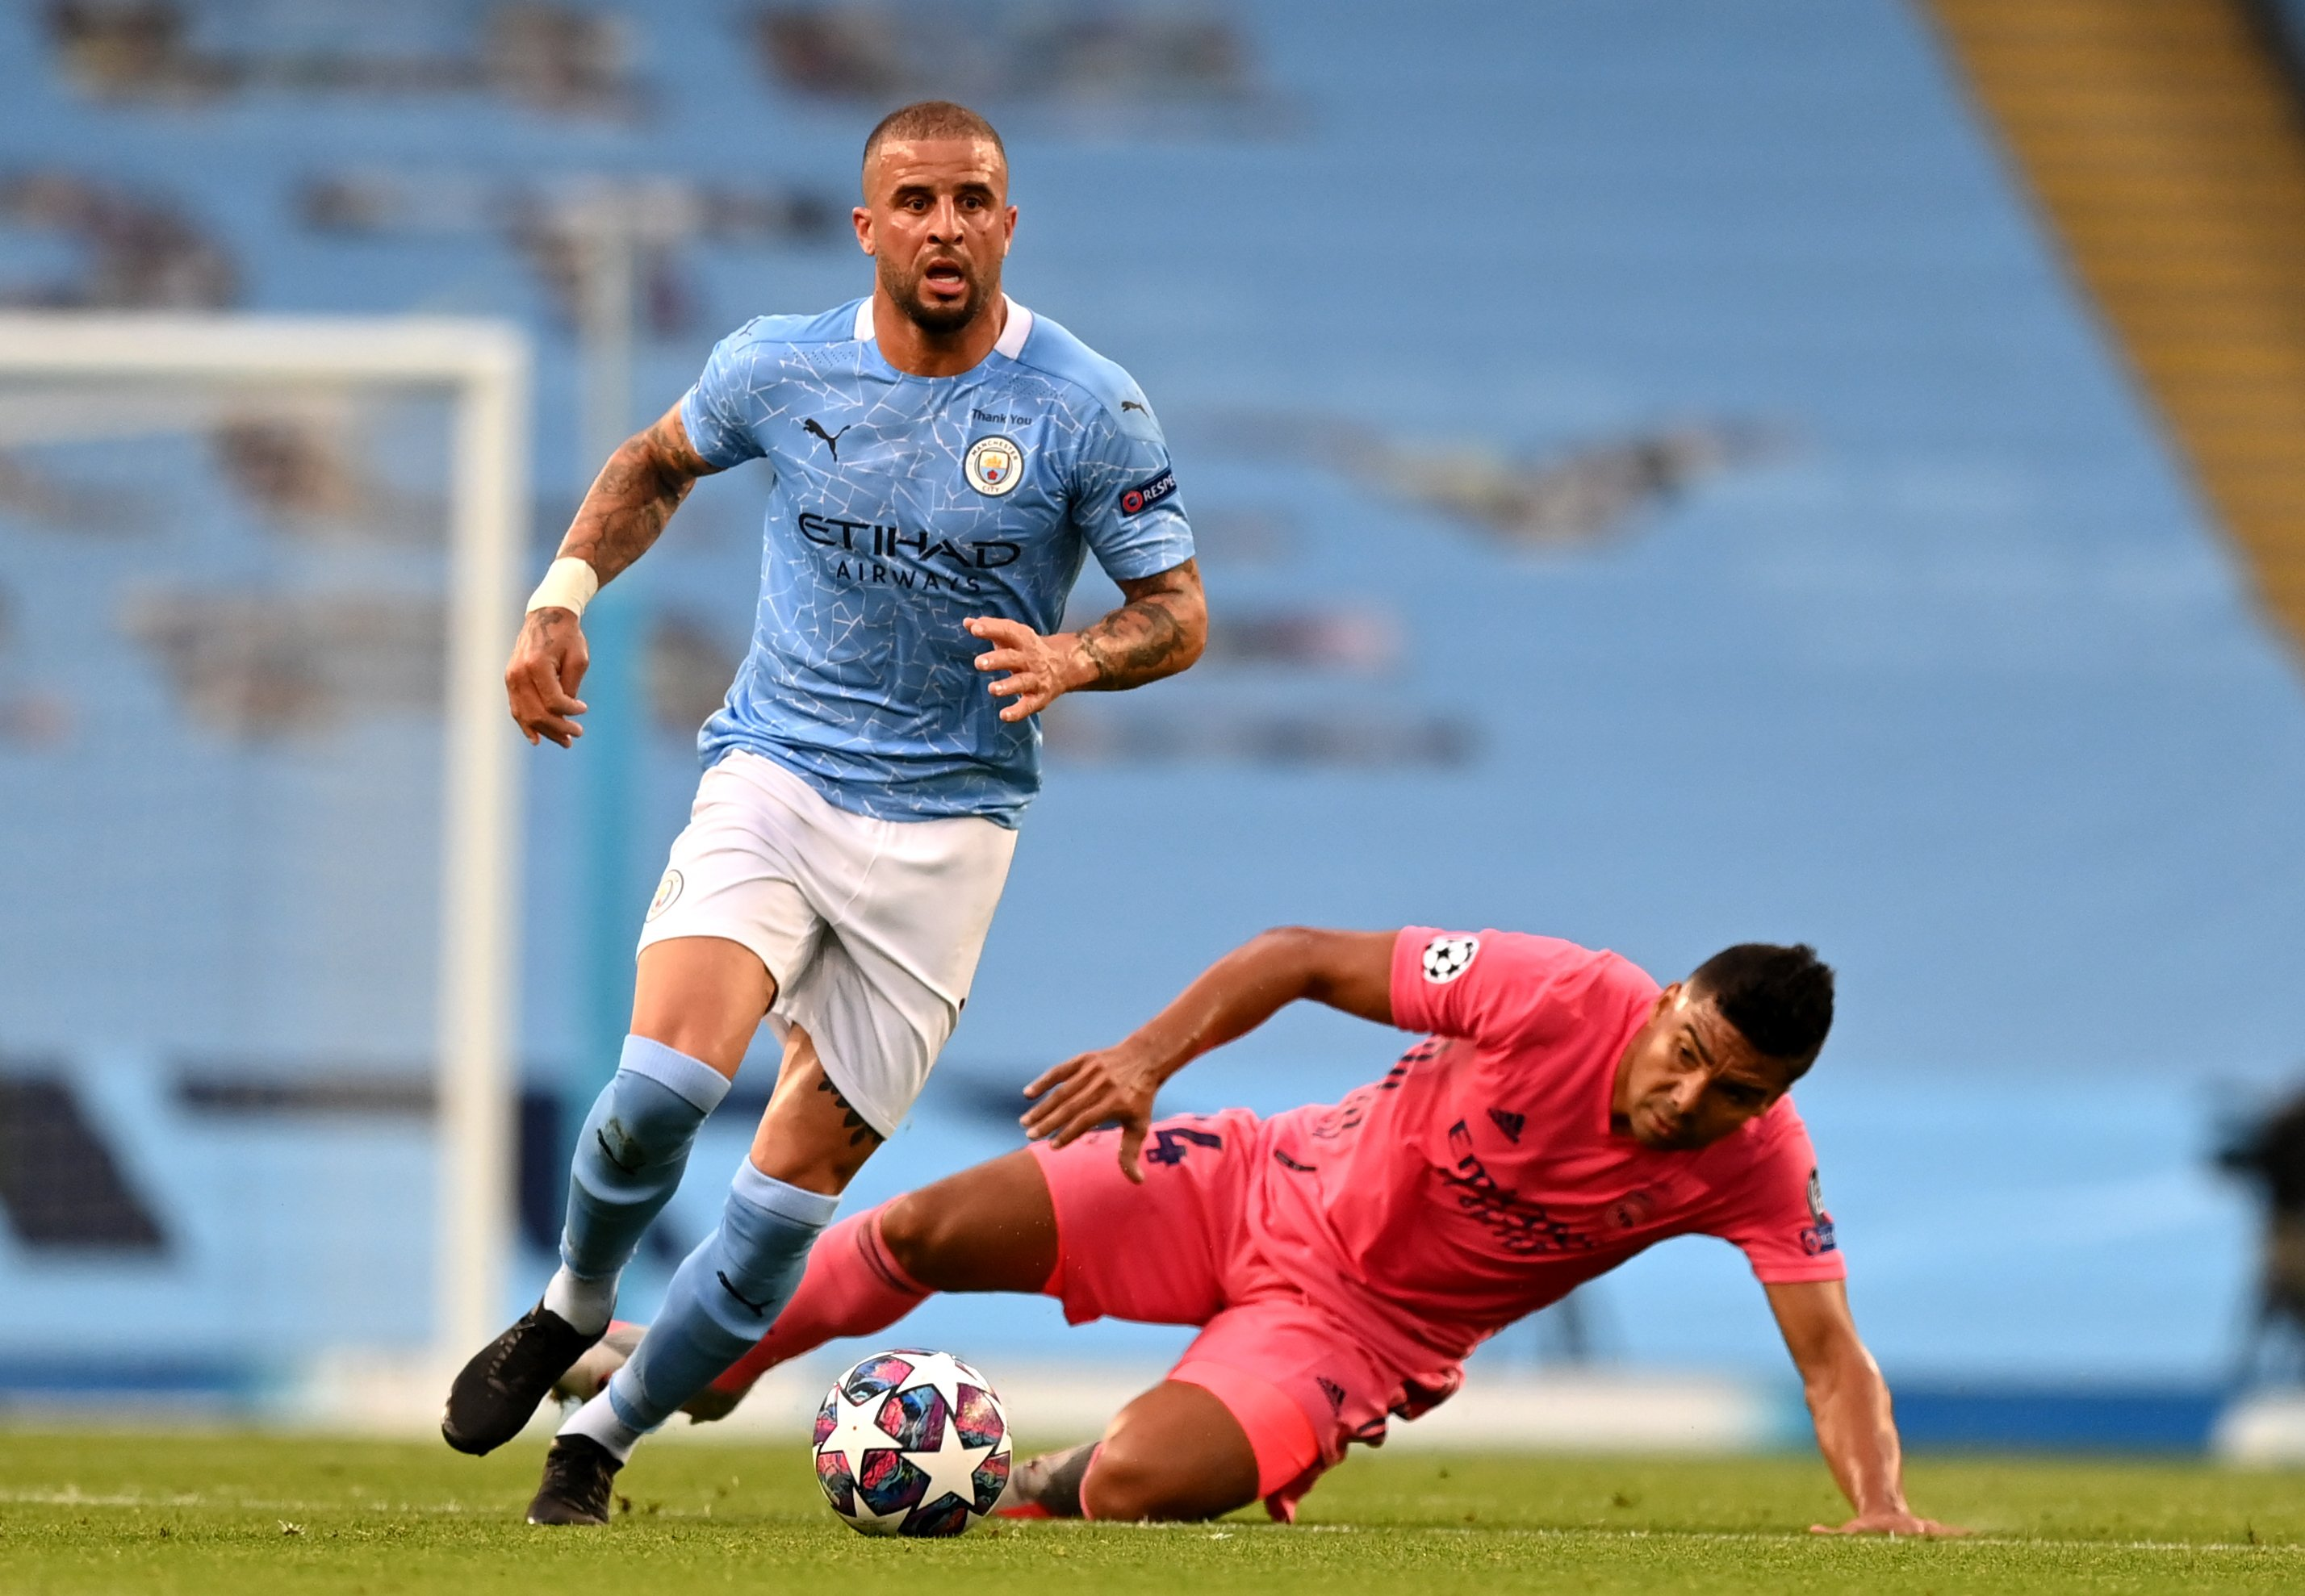 This is one of best shots we will get at Champions League glory – Kyle Walker